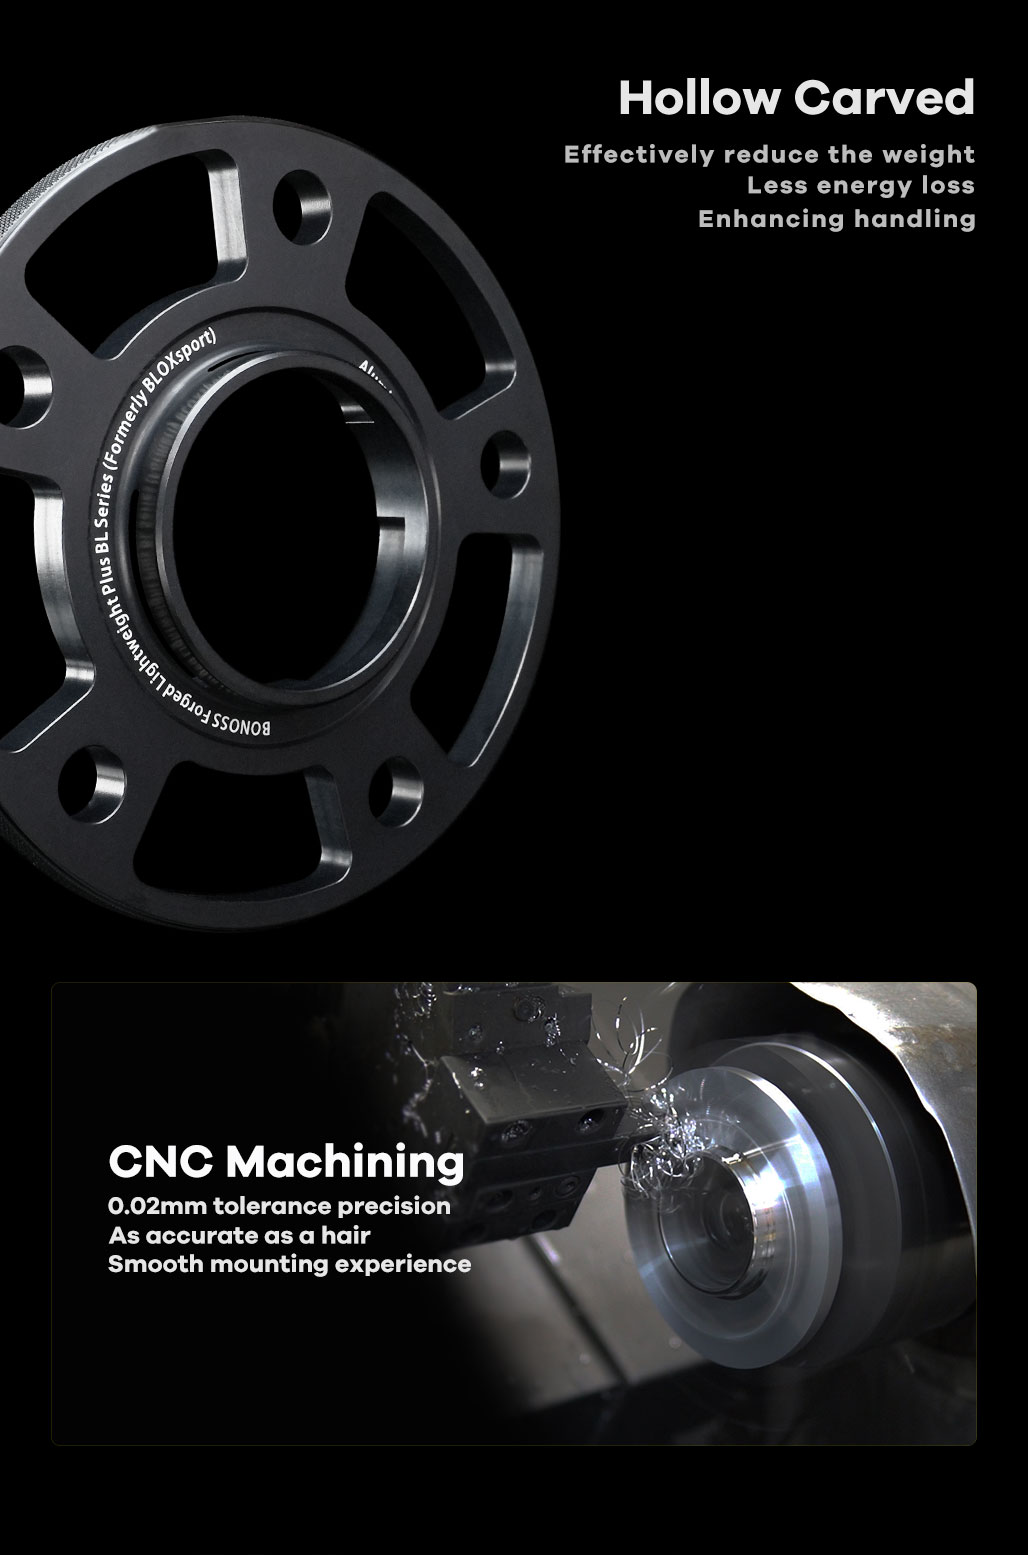 BONOSS-forged-lightweight-plus-3petals-special-hubcentric-wheel-spacer-for-Porsche-Panamera-5x130-71.6-14x1.5-6061t6-by-grace-2